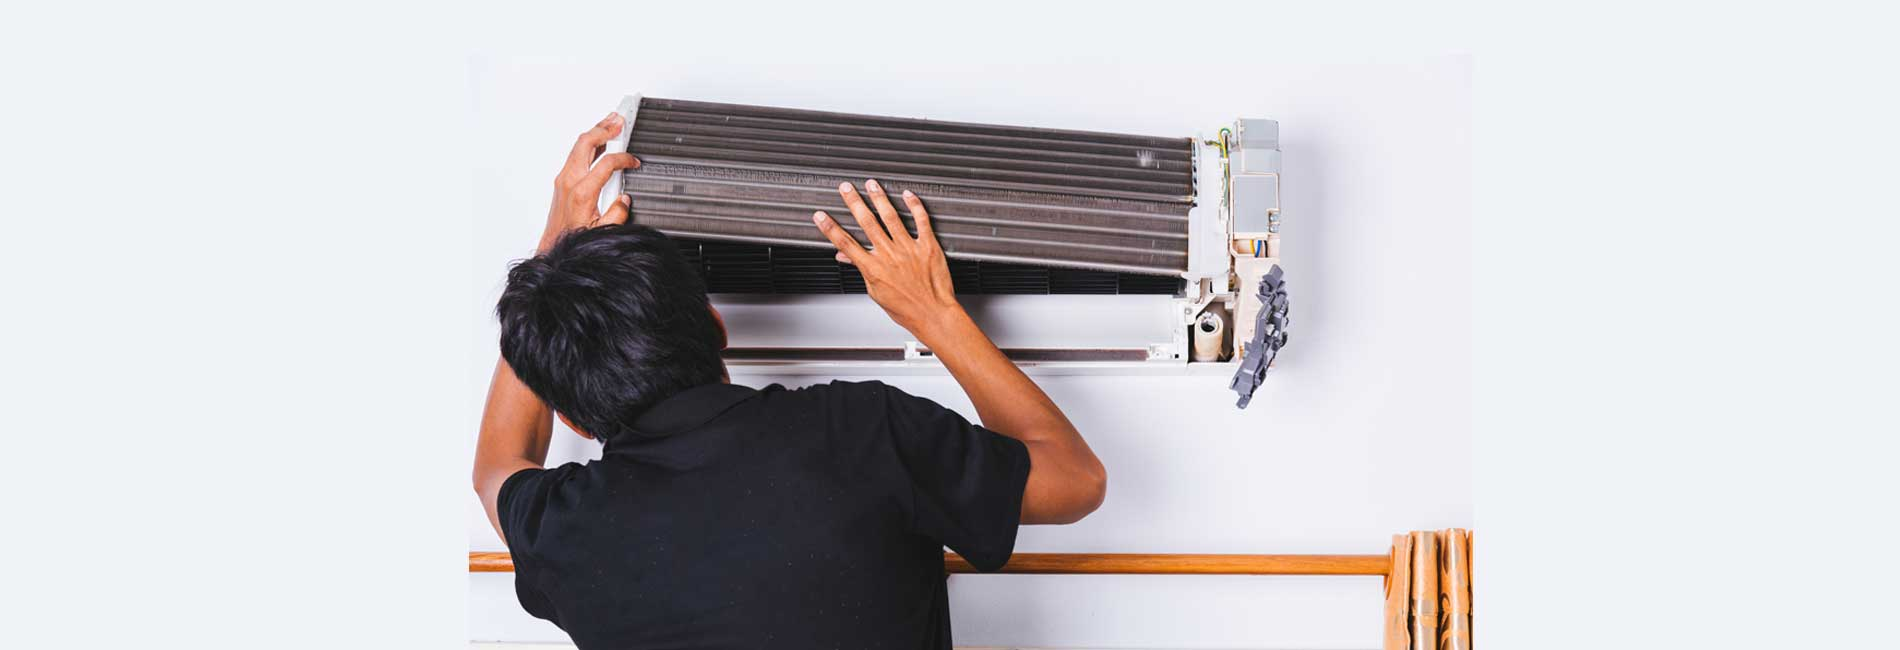 AC Uninstallation and Installation in Athipattu